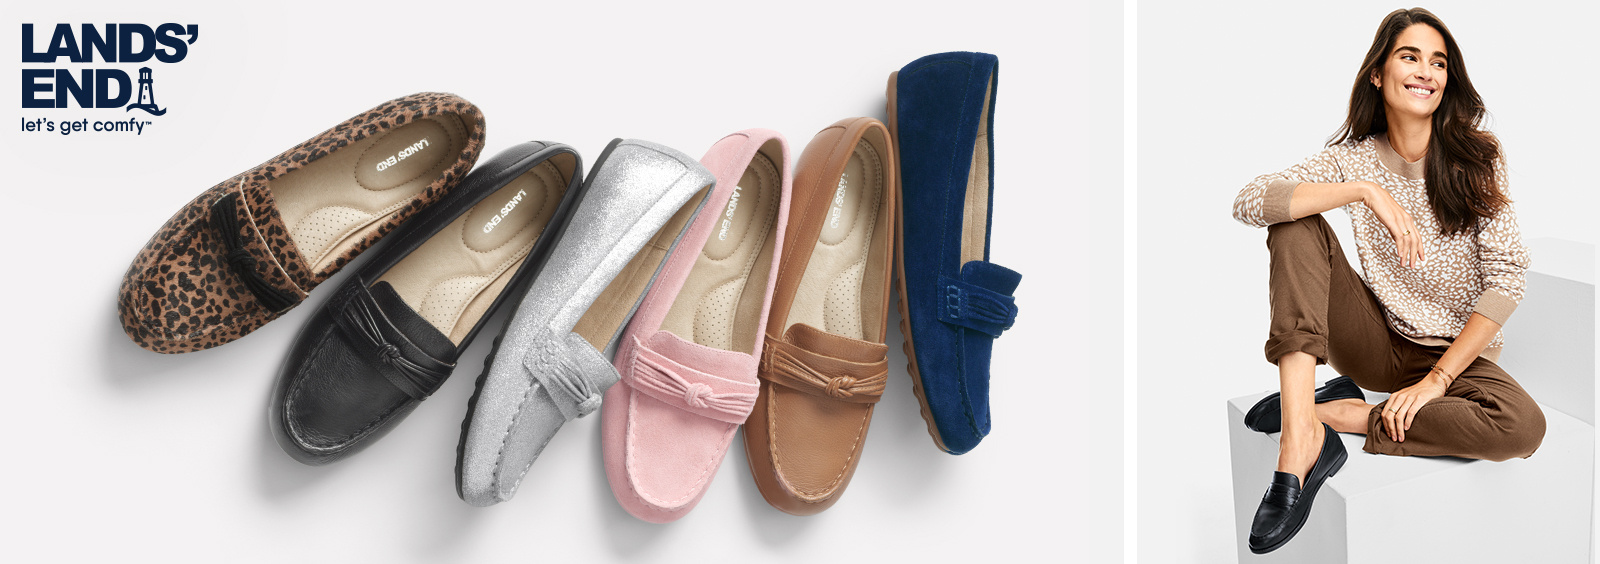 Best Shoes to Pair With Comfy Clothes When Going Out